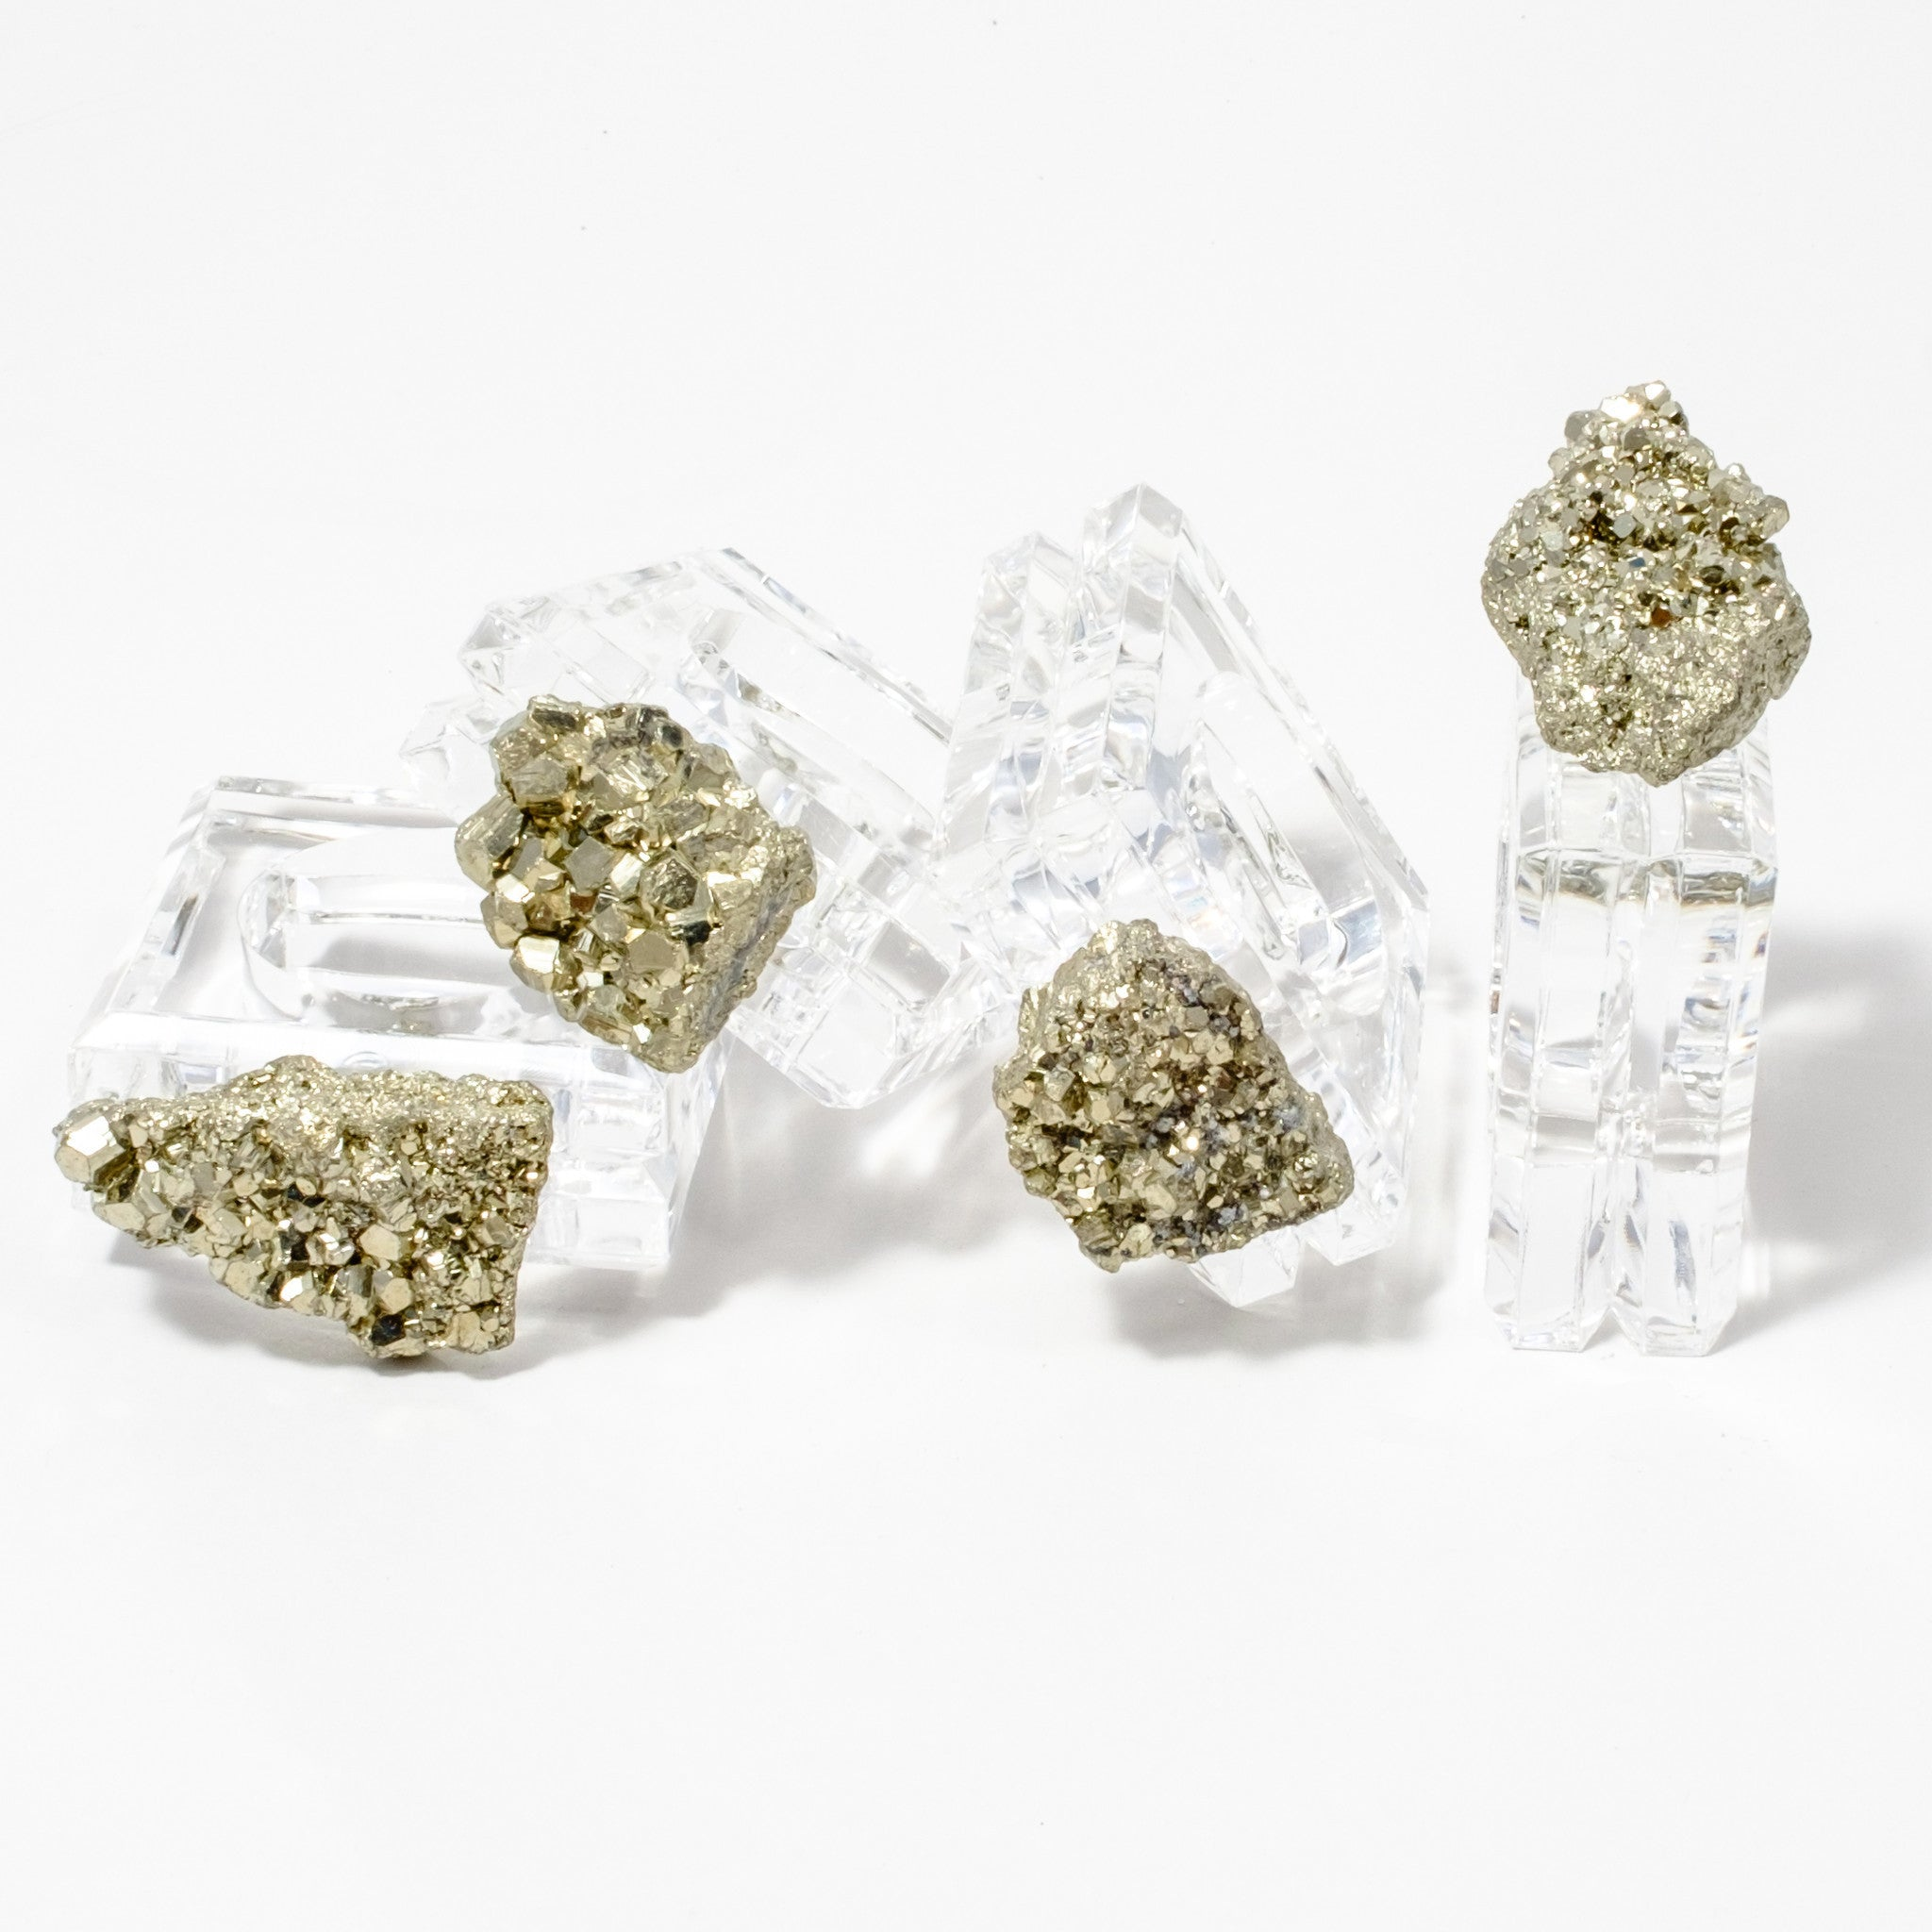 (set of 4) Pyrite Napkin Rings by Mapleton Drive